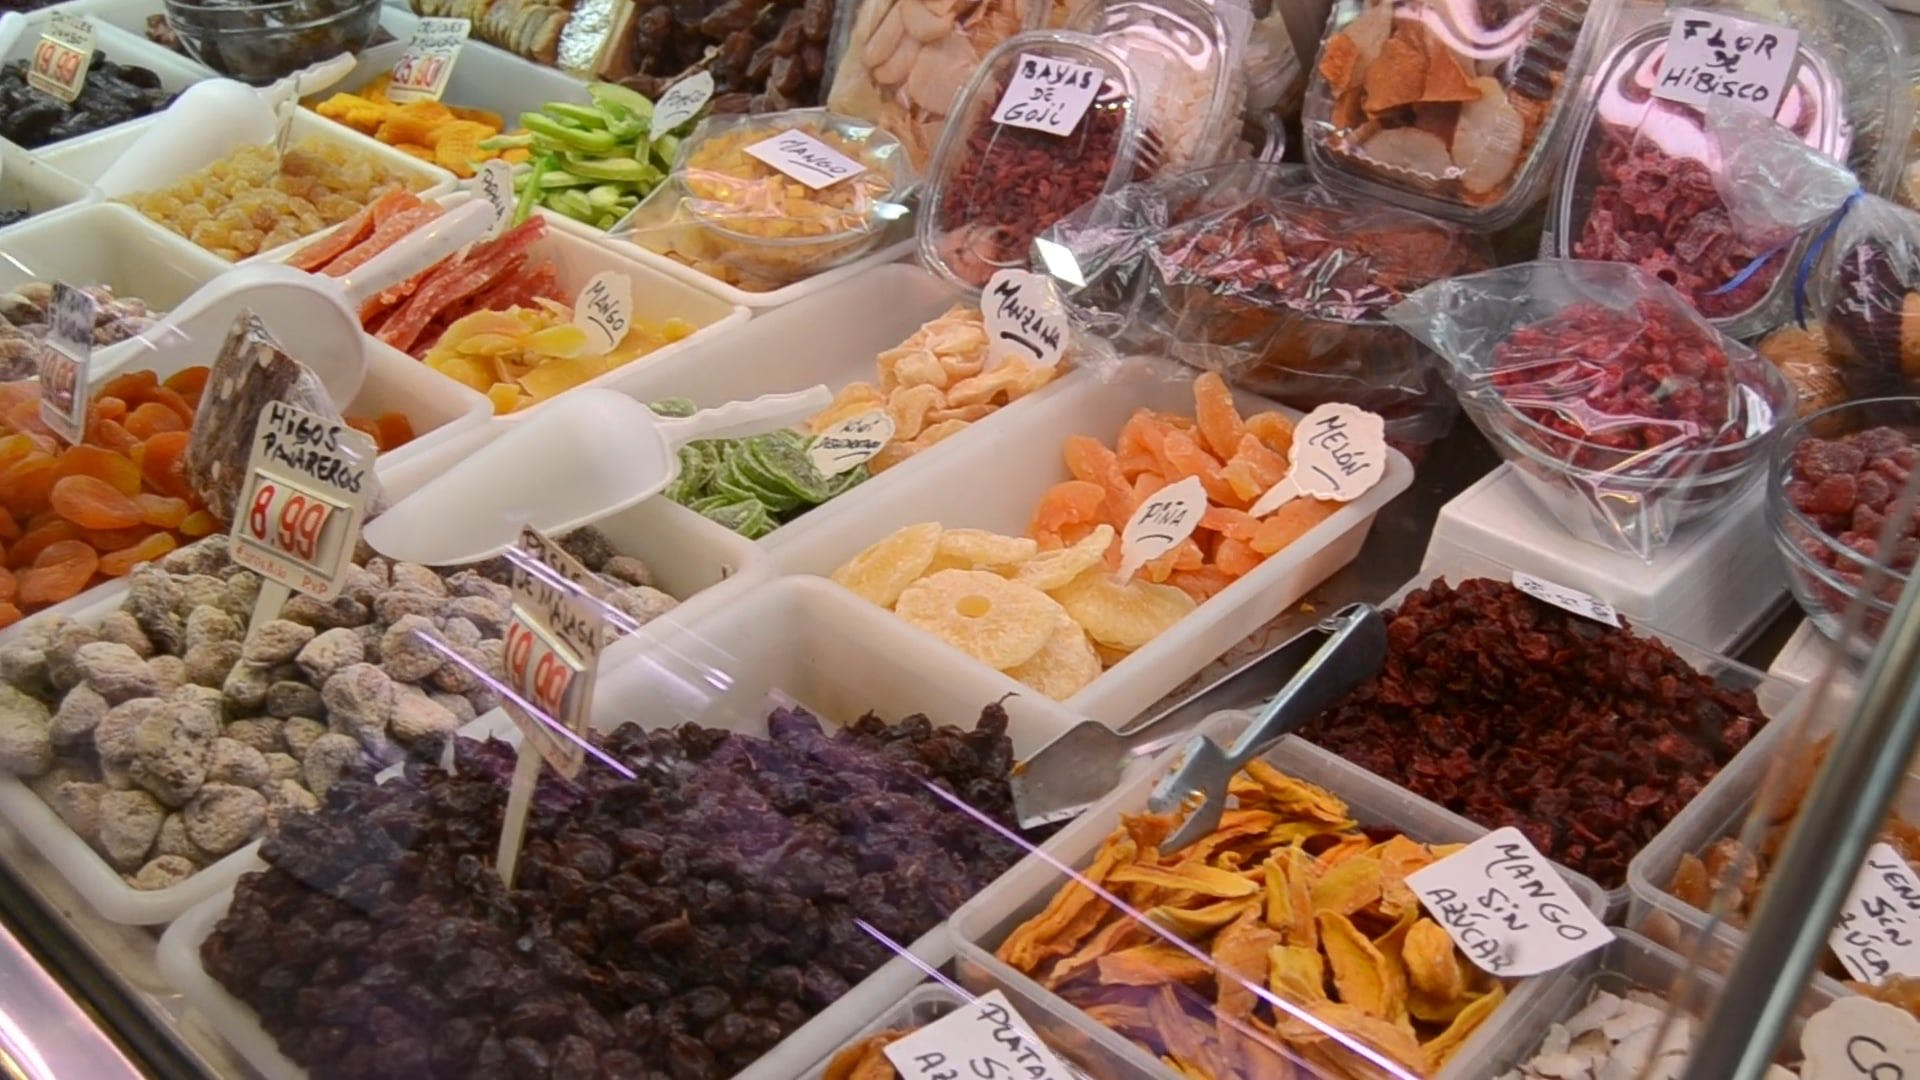 Variety Of Foods In Display